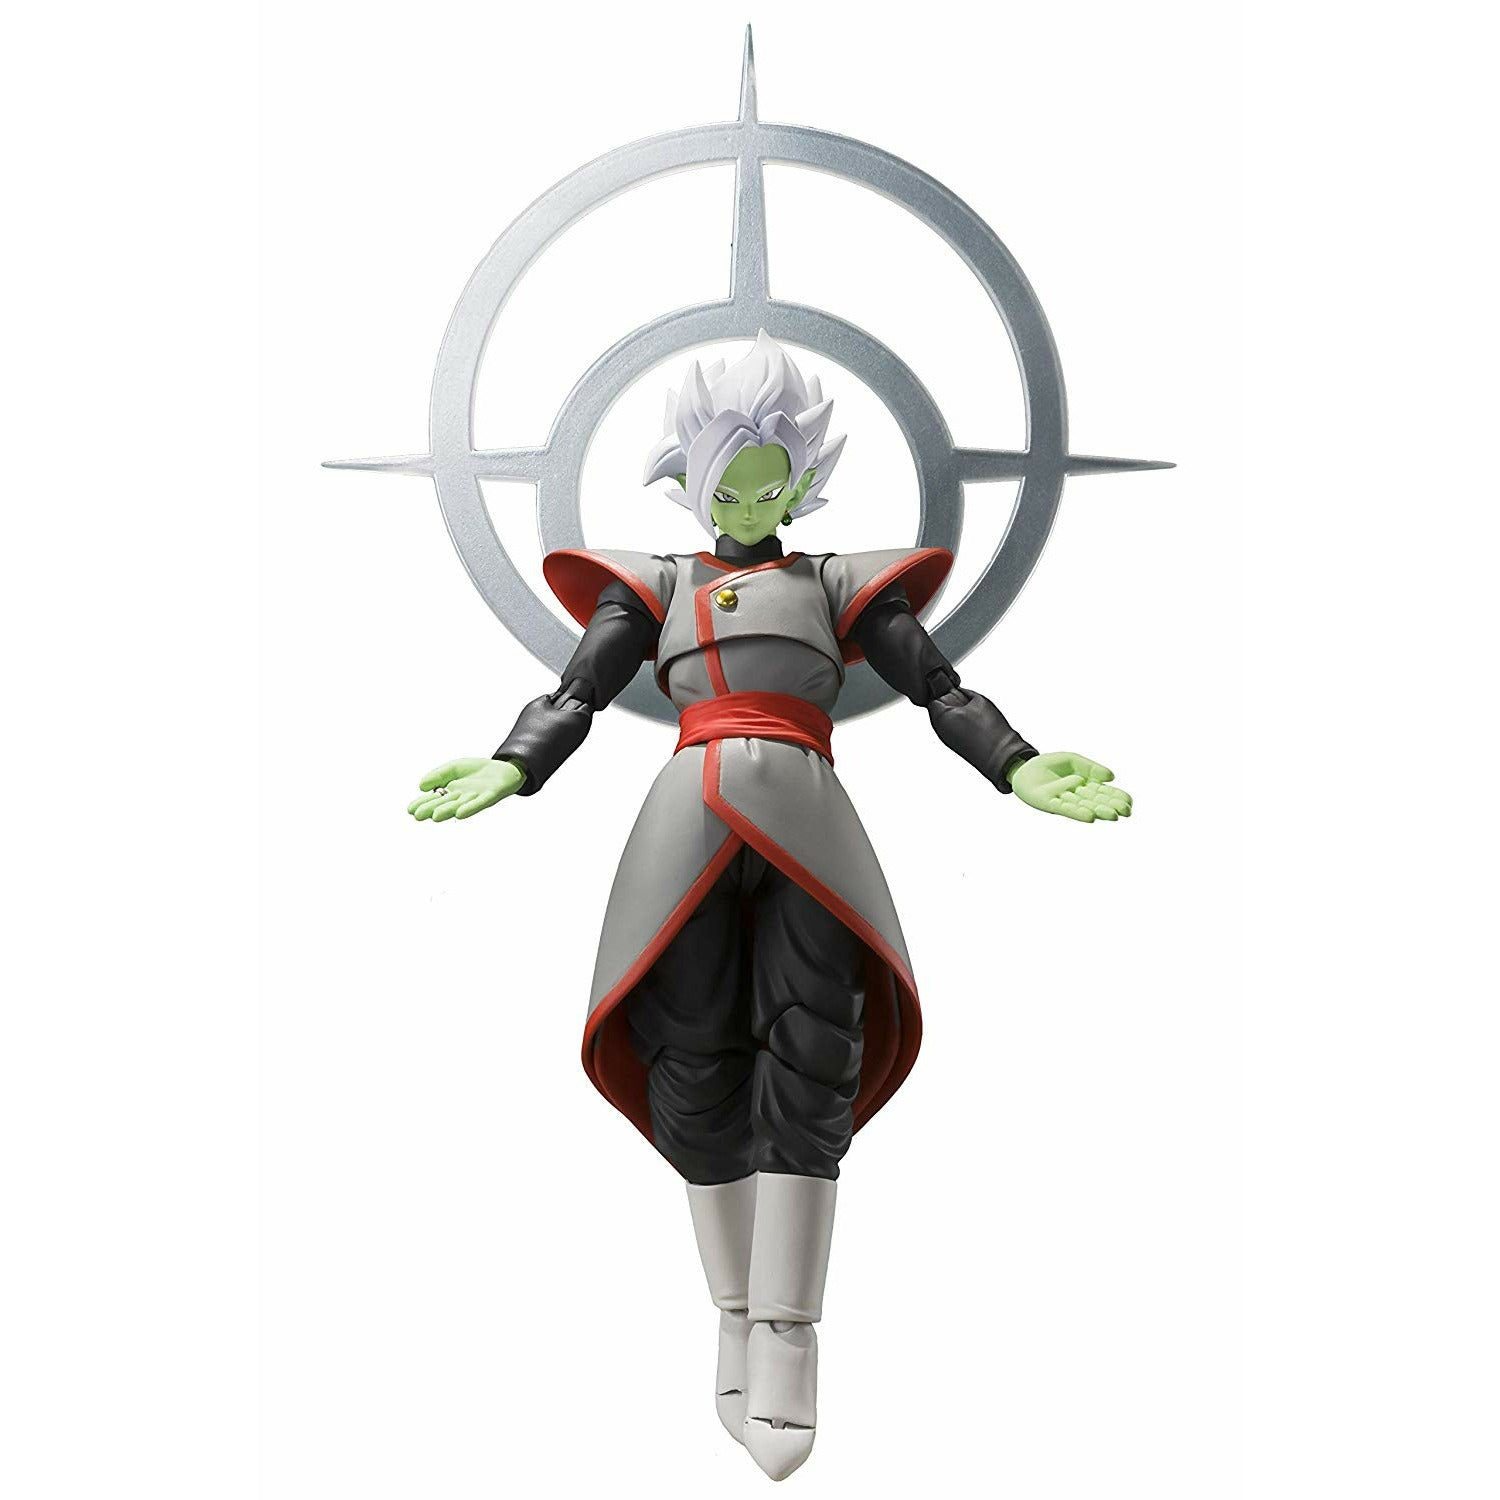 Dragon Ball Super Zamasu Potara S.H.Figuarts Action Figure